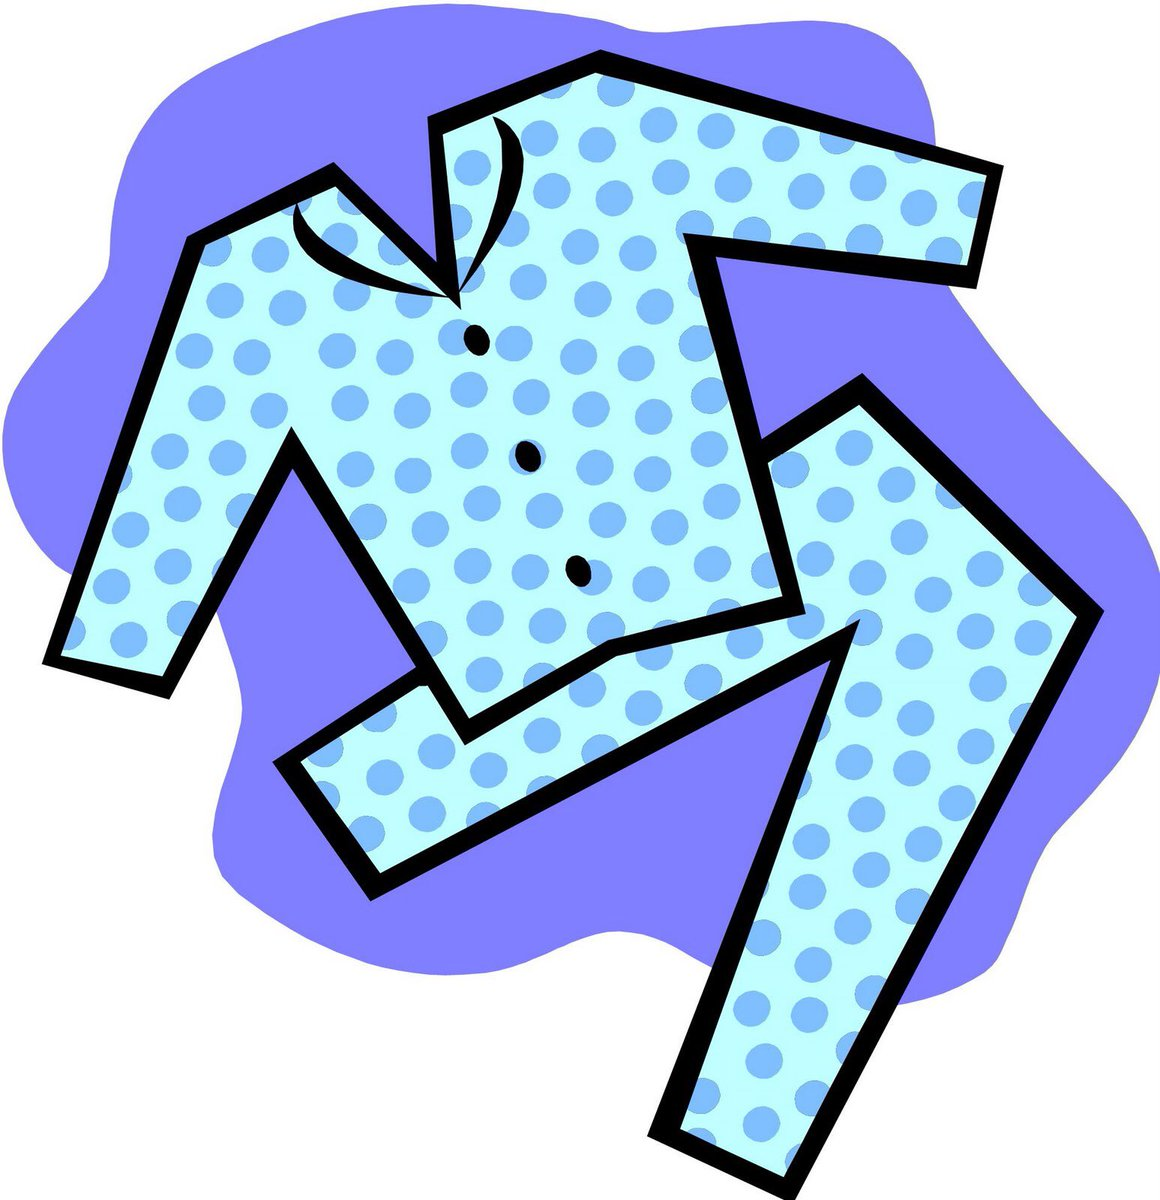 Pajamas clipart folded. Ingrid coupland iwolk photo